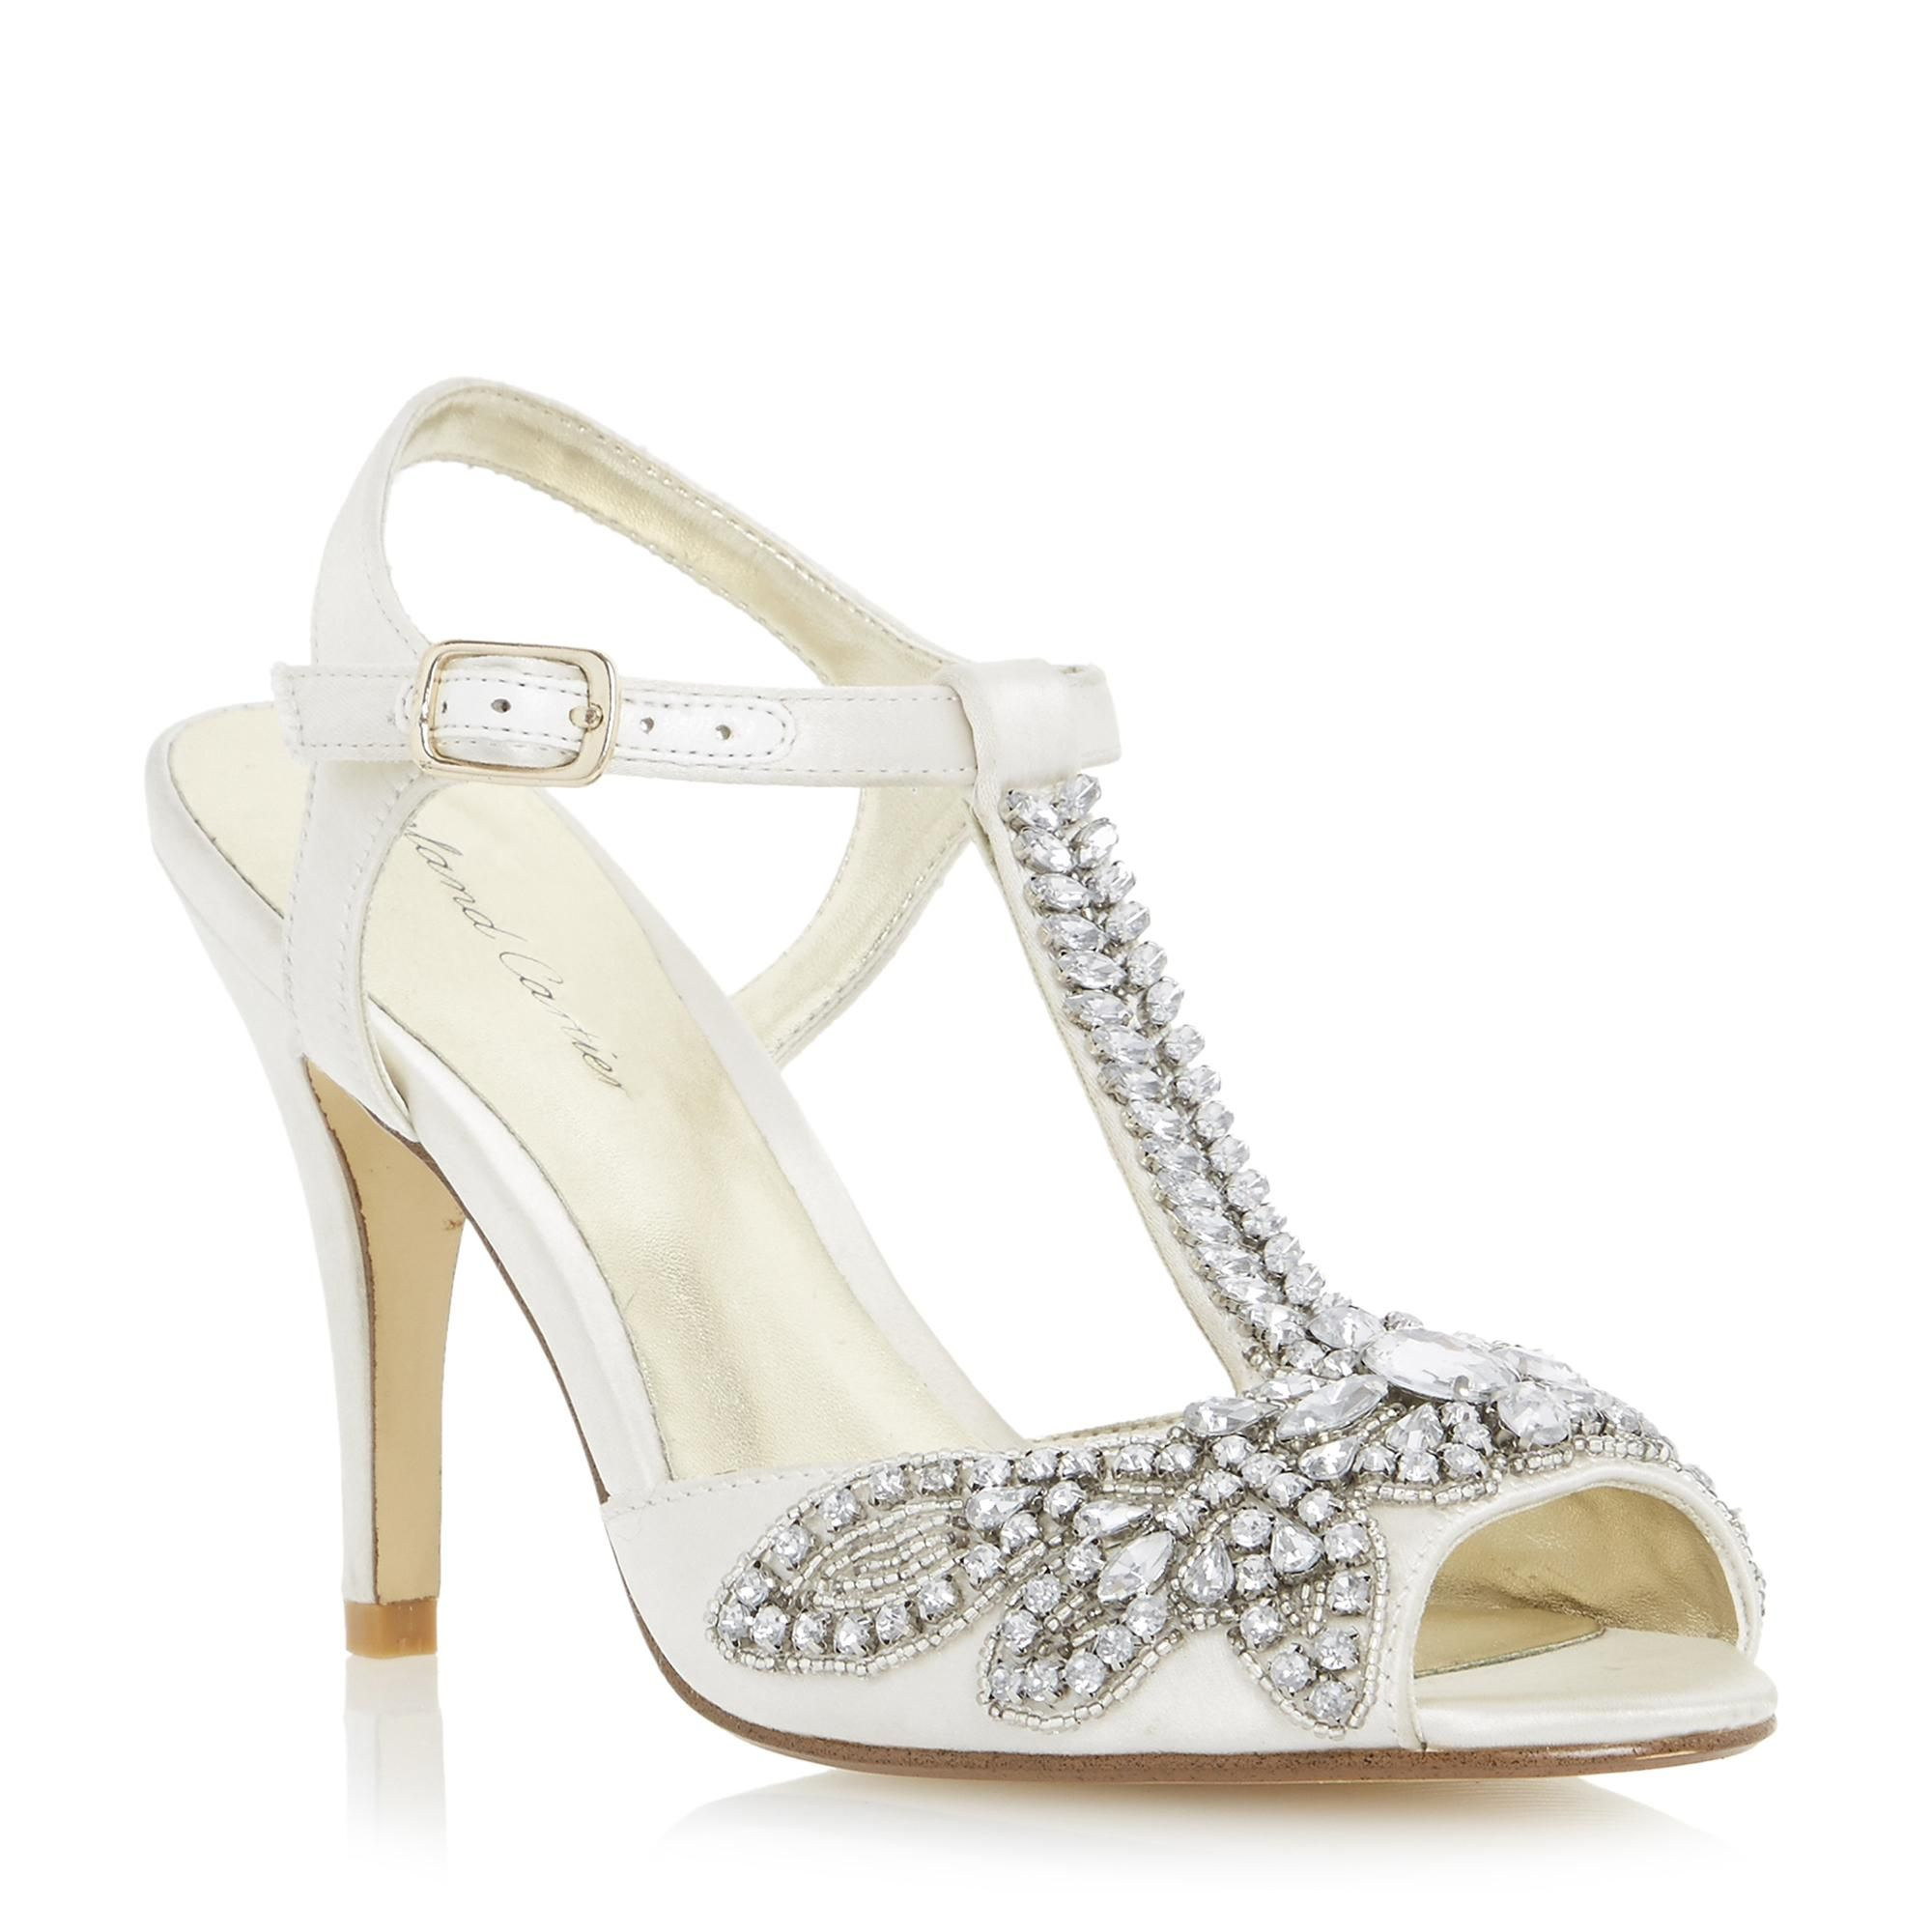 46094209d461e Roland Cartier Ladies MONTORI - Embellished Jewel Heeled Sandal - ivory